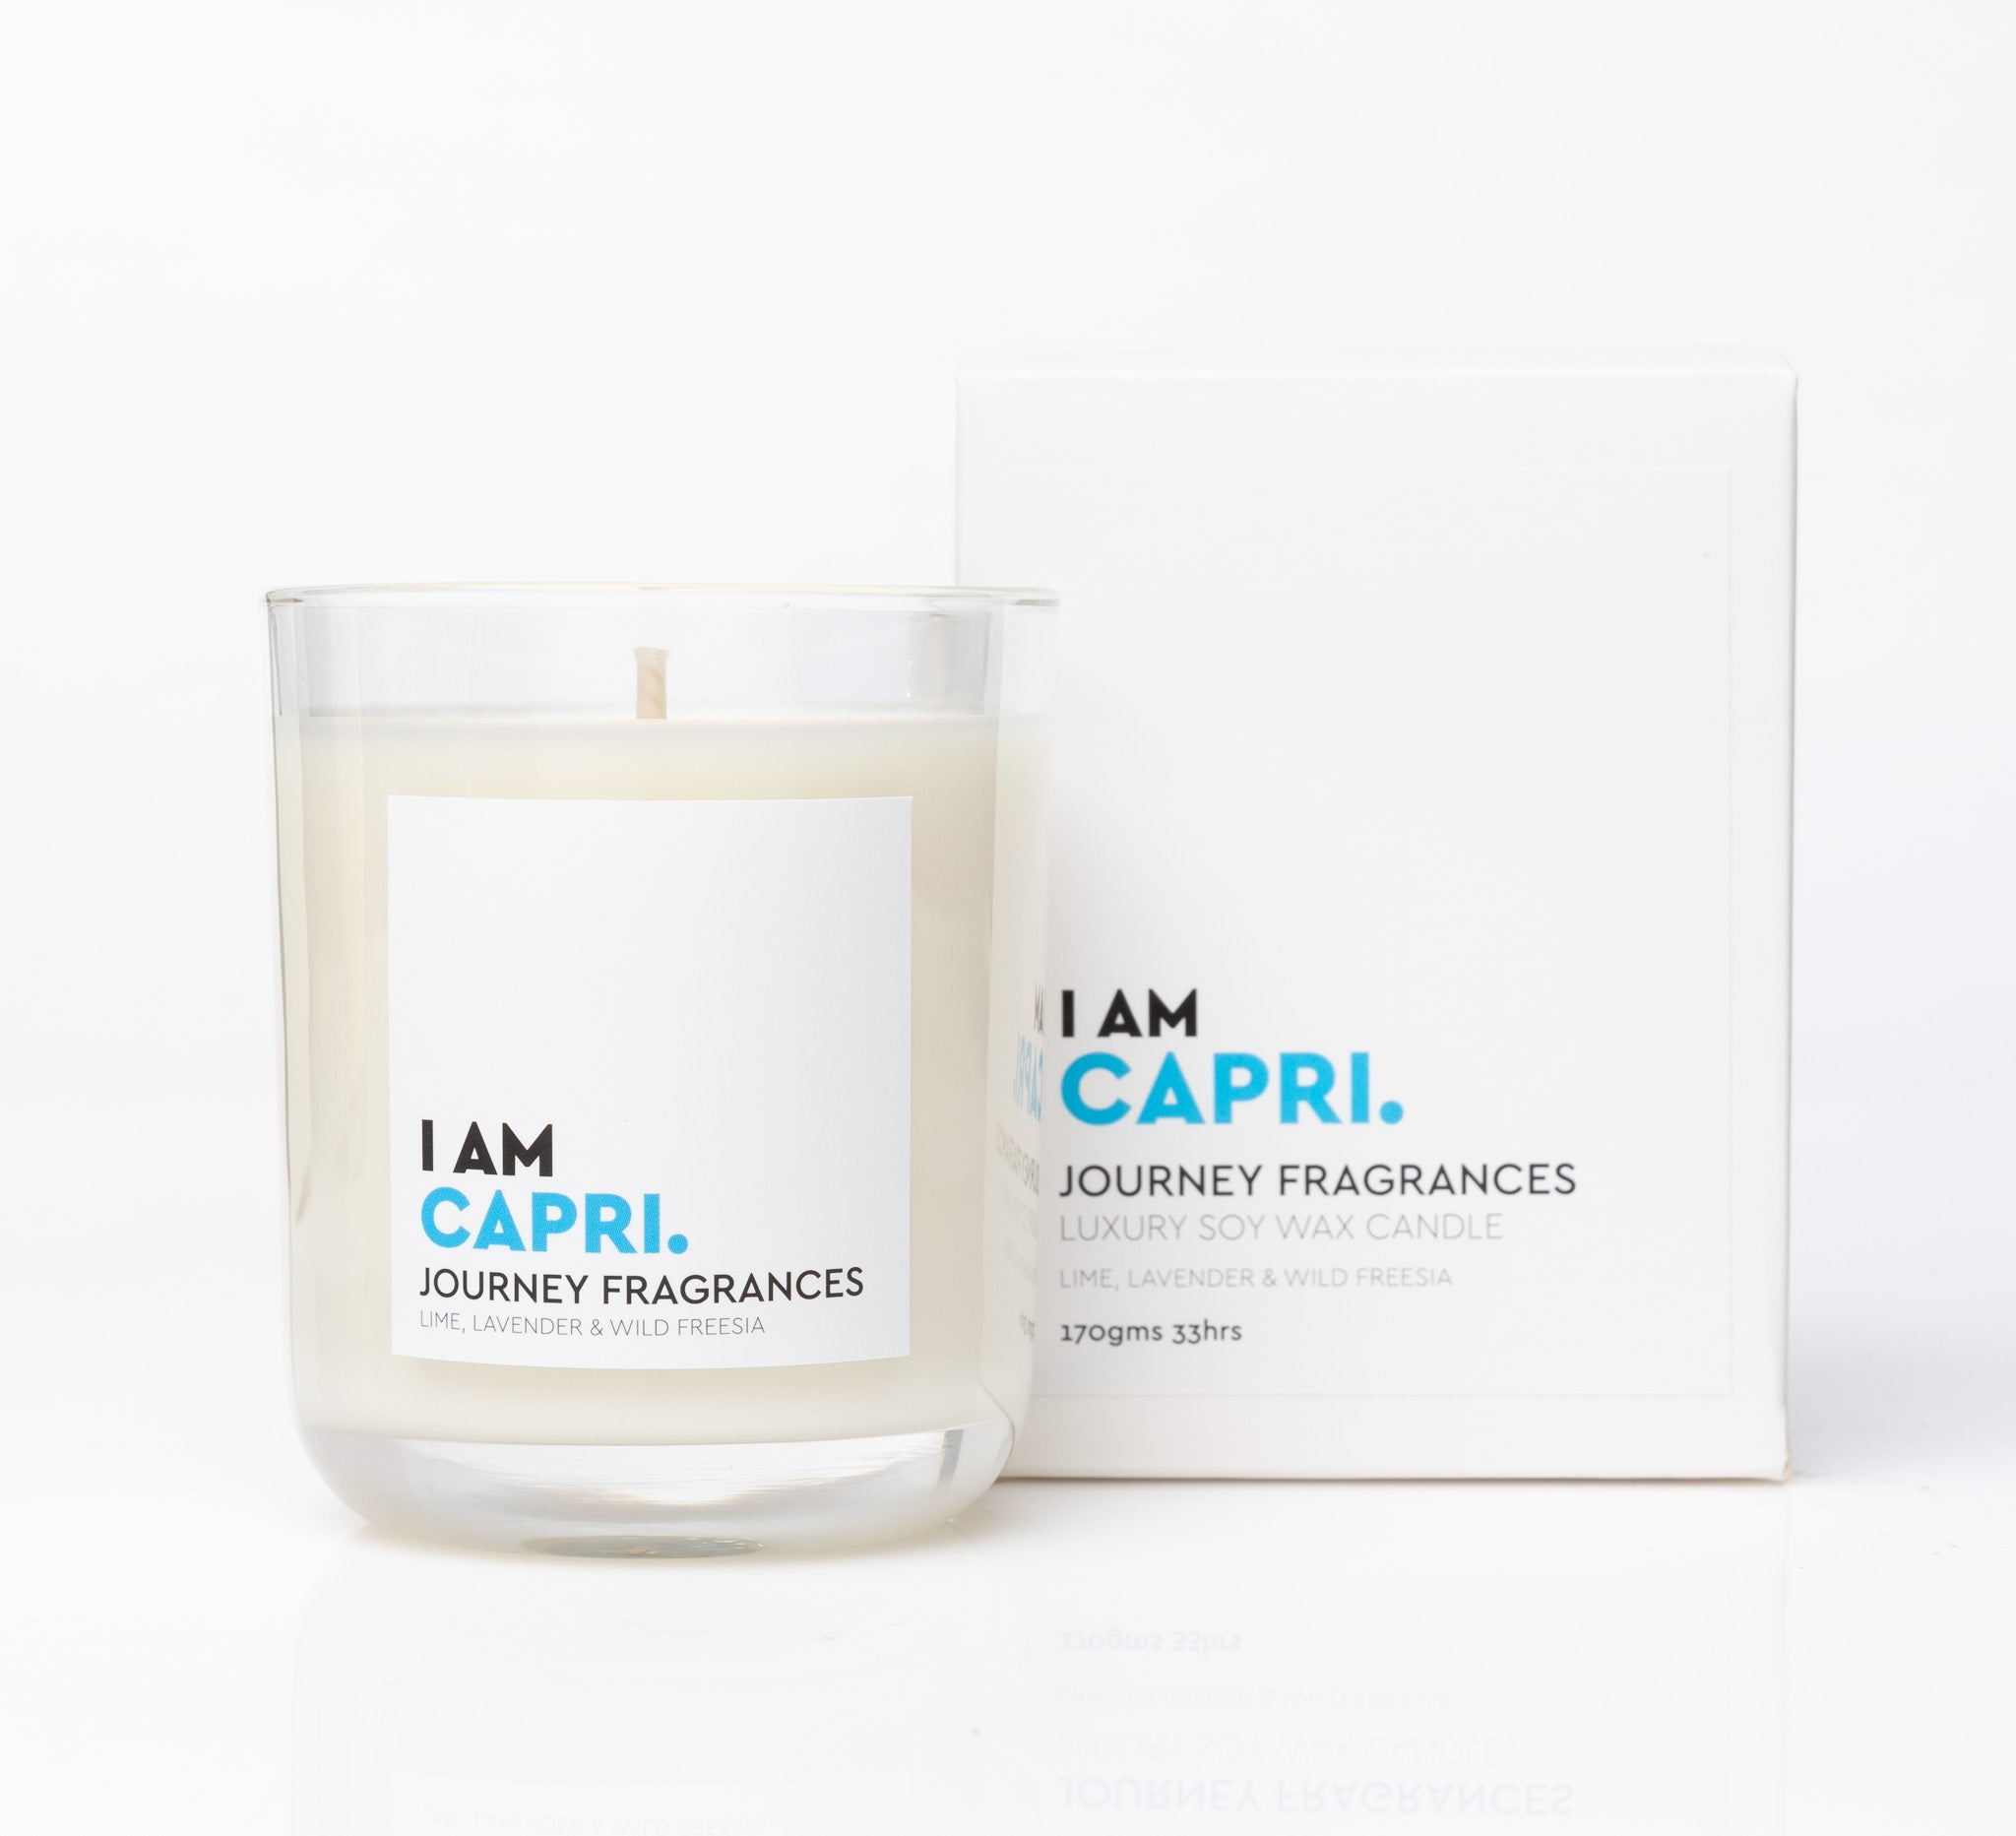 Capri - small candle